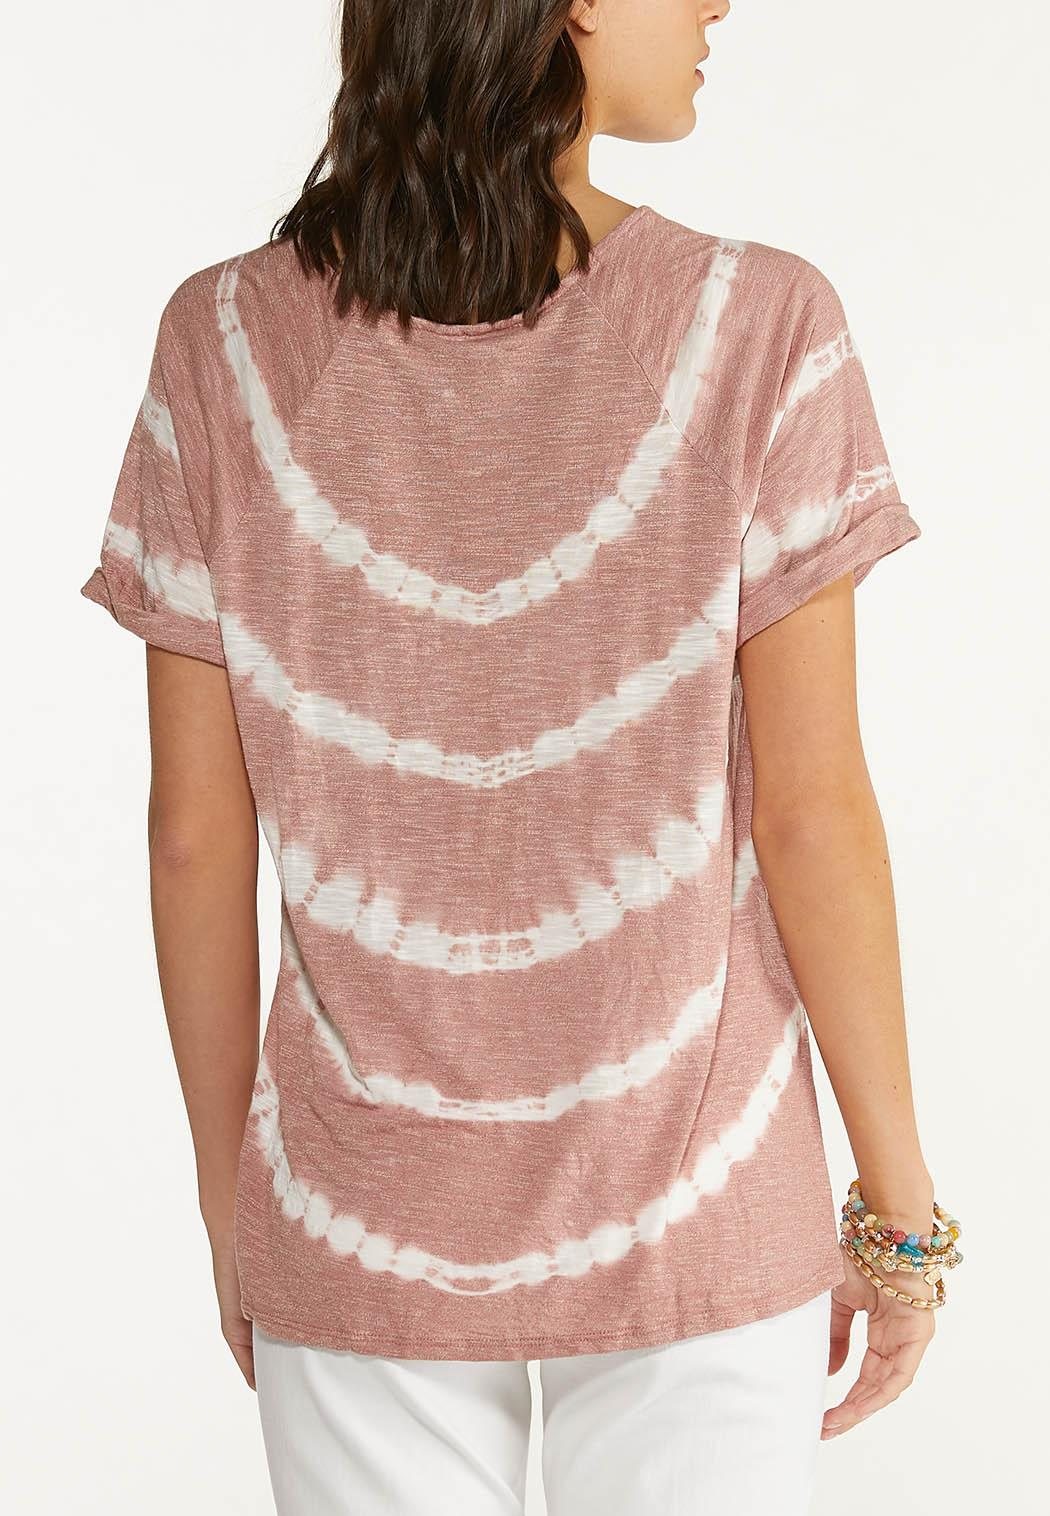 Knotted Tie Dye Lounge Top (Item #44613114)